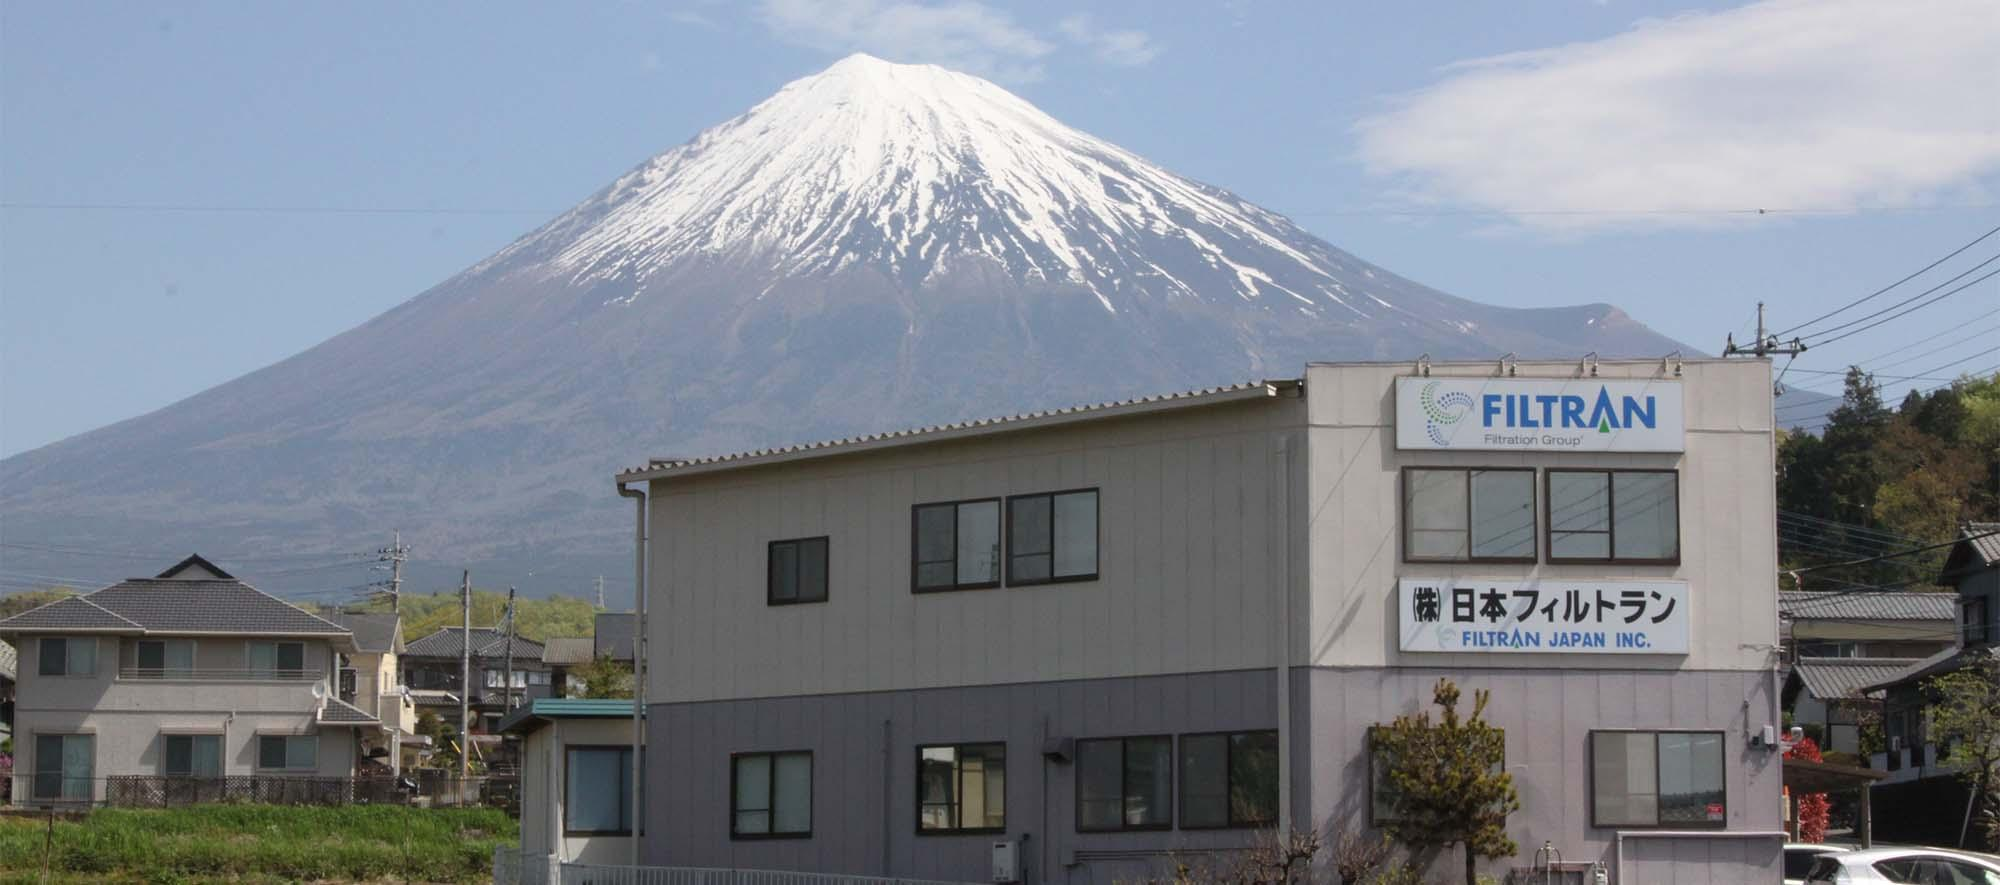 building in japan with mt fuji in background